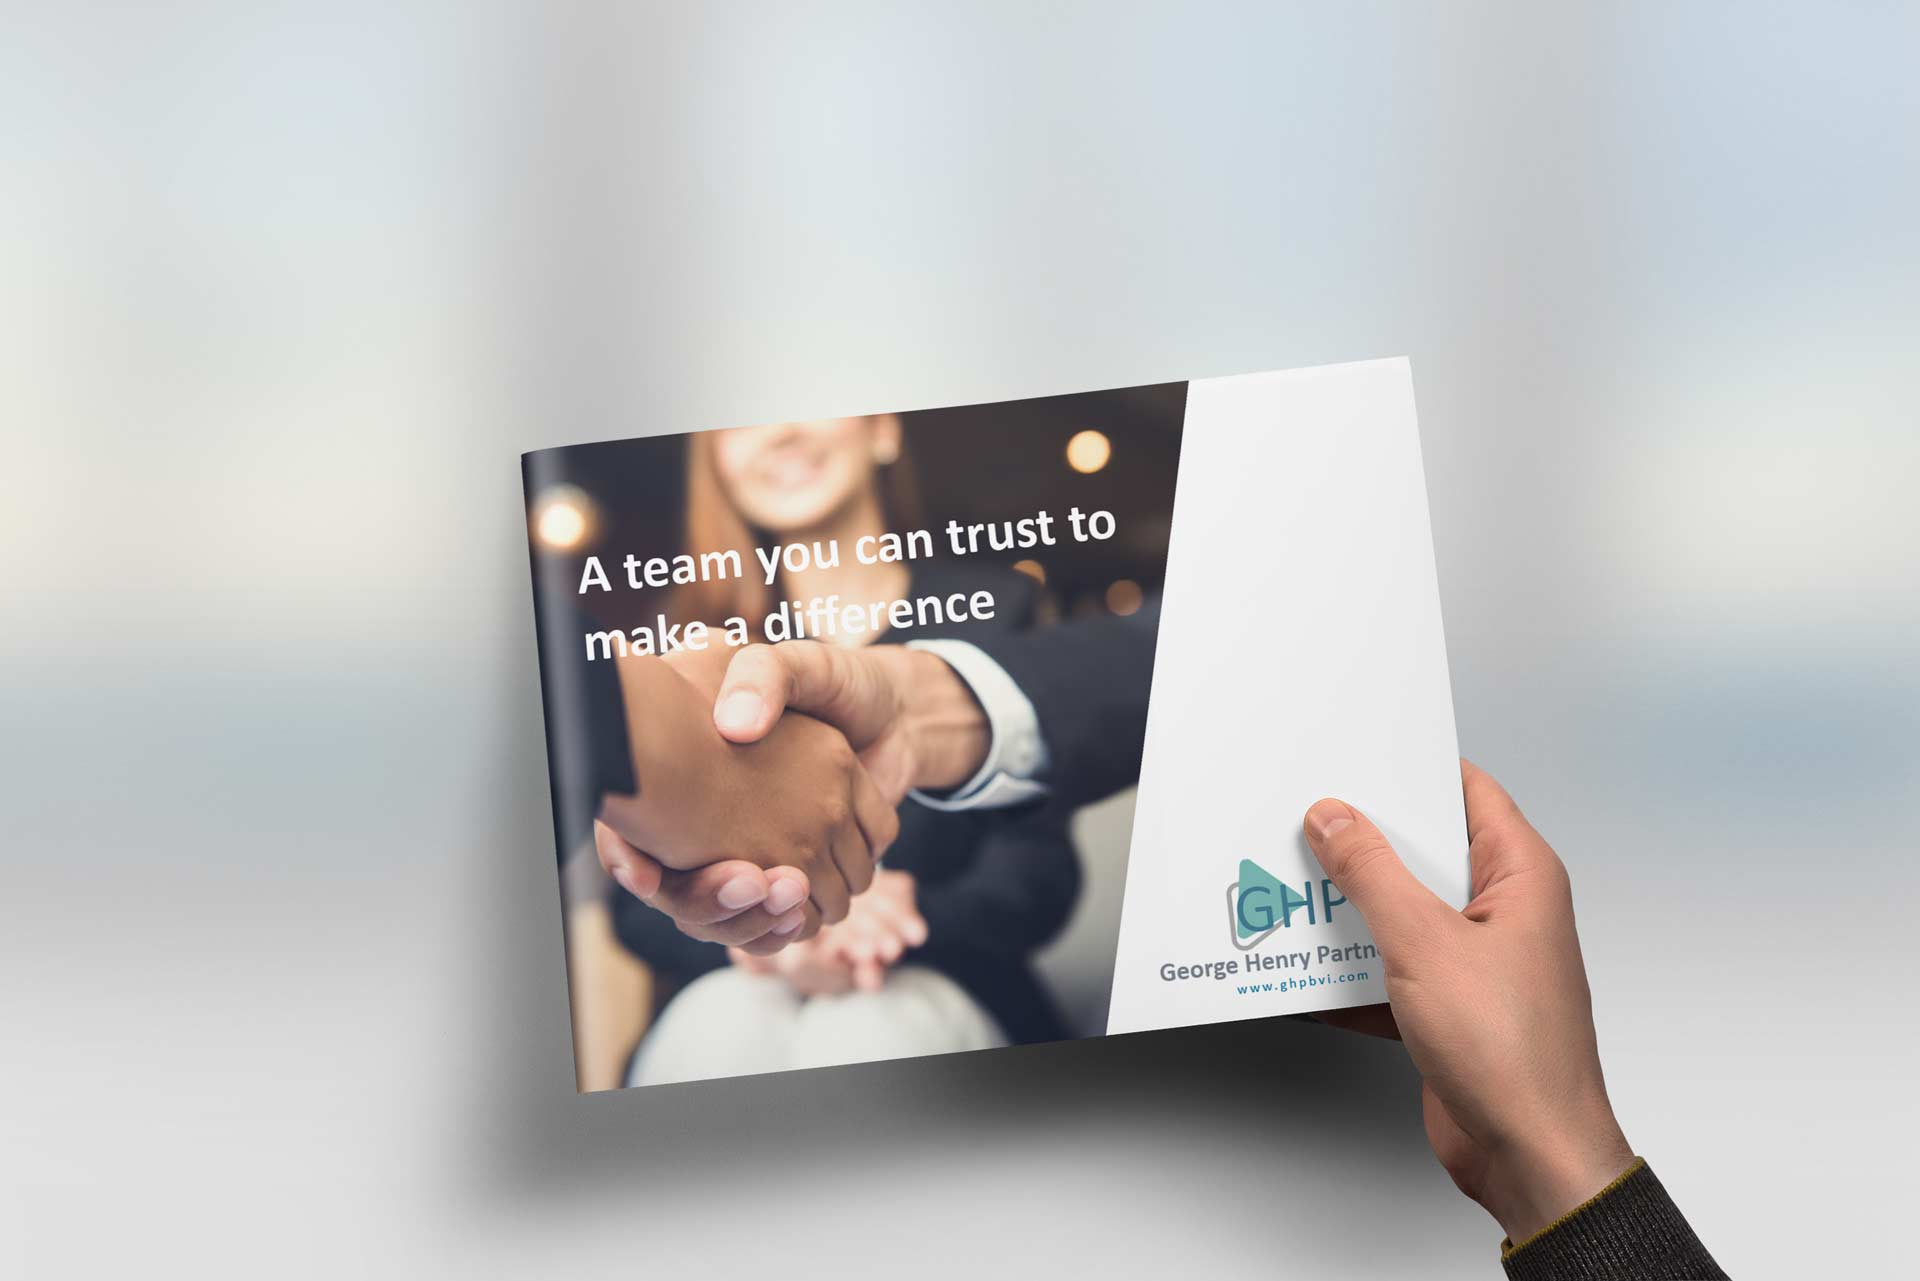 Hand is holding a sophisticated, well designed corporate brochure design over a blurred background